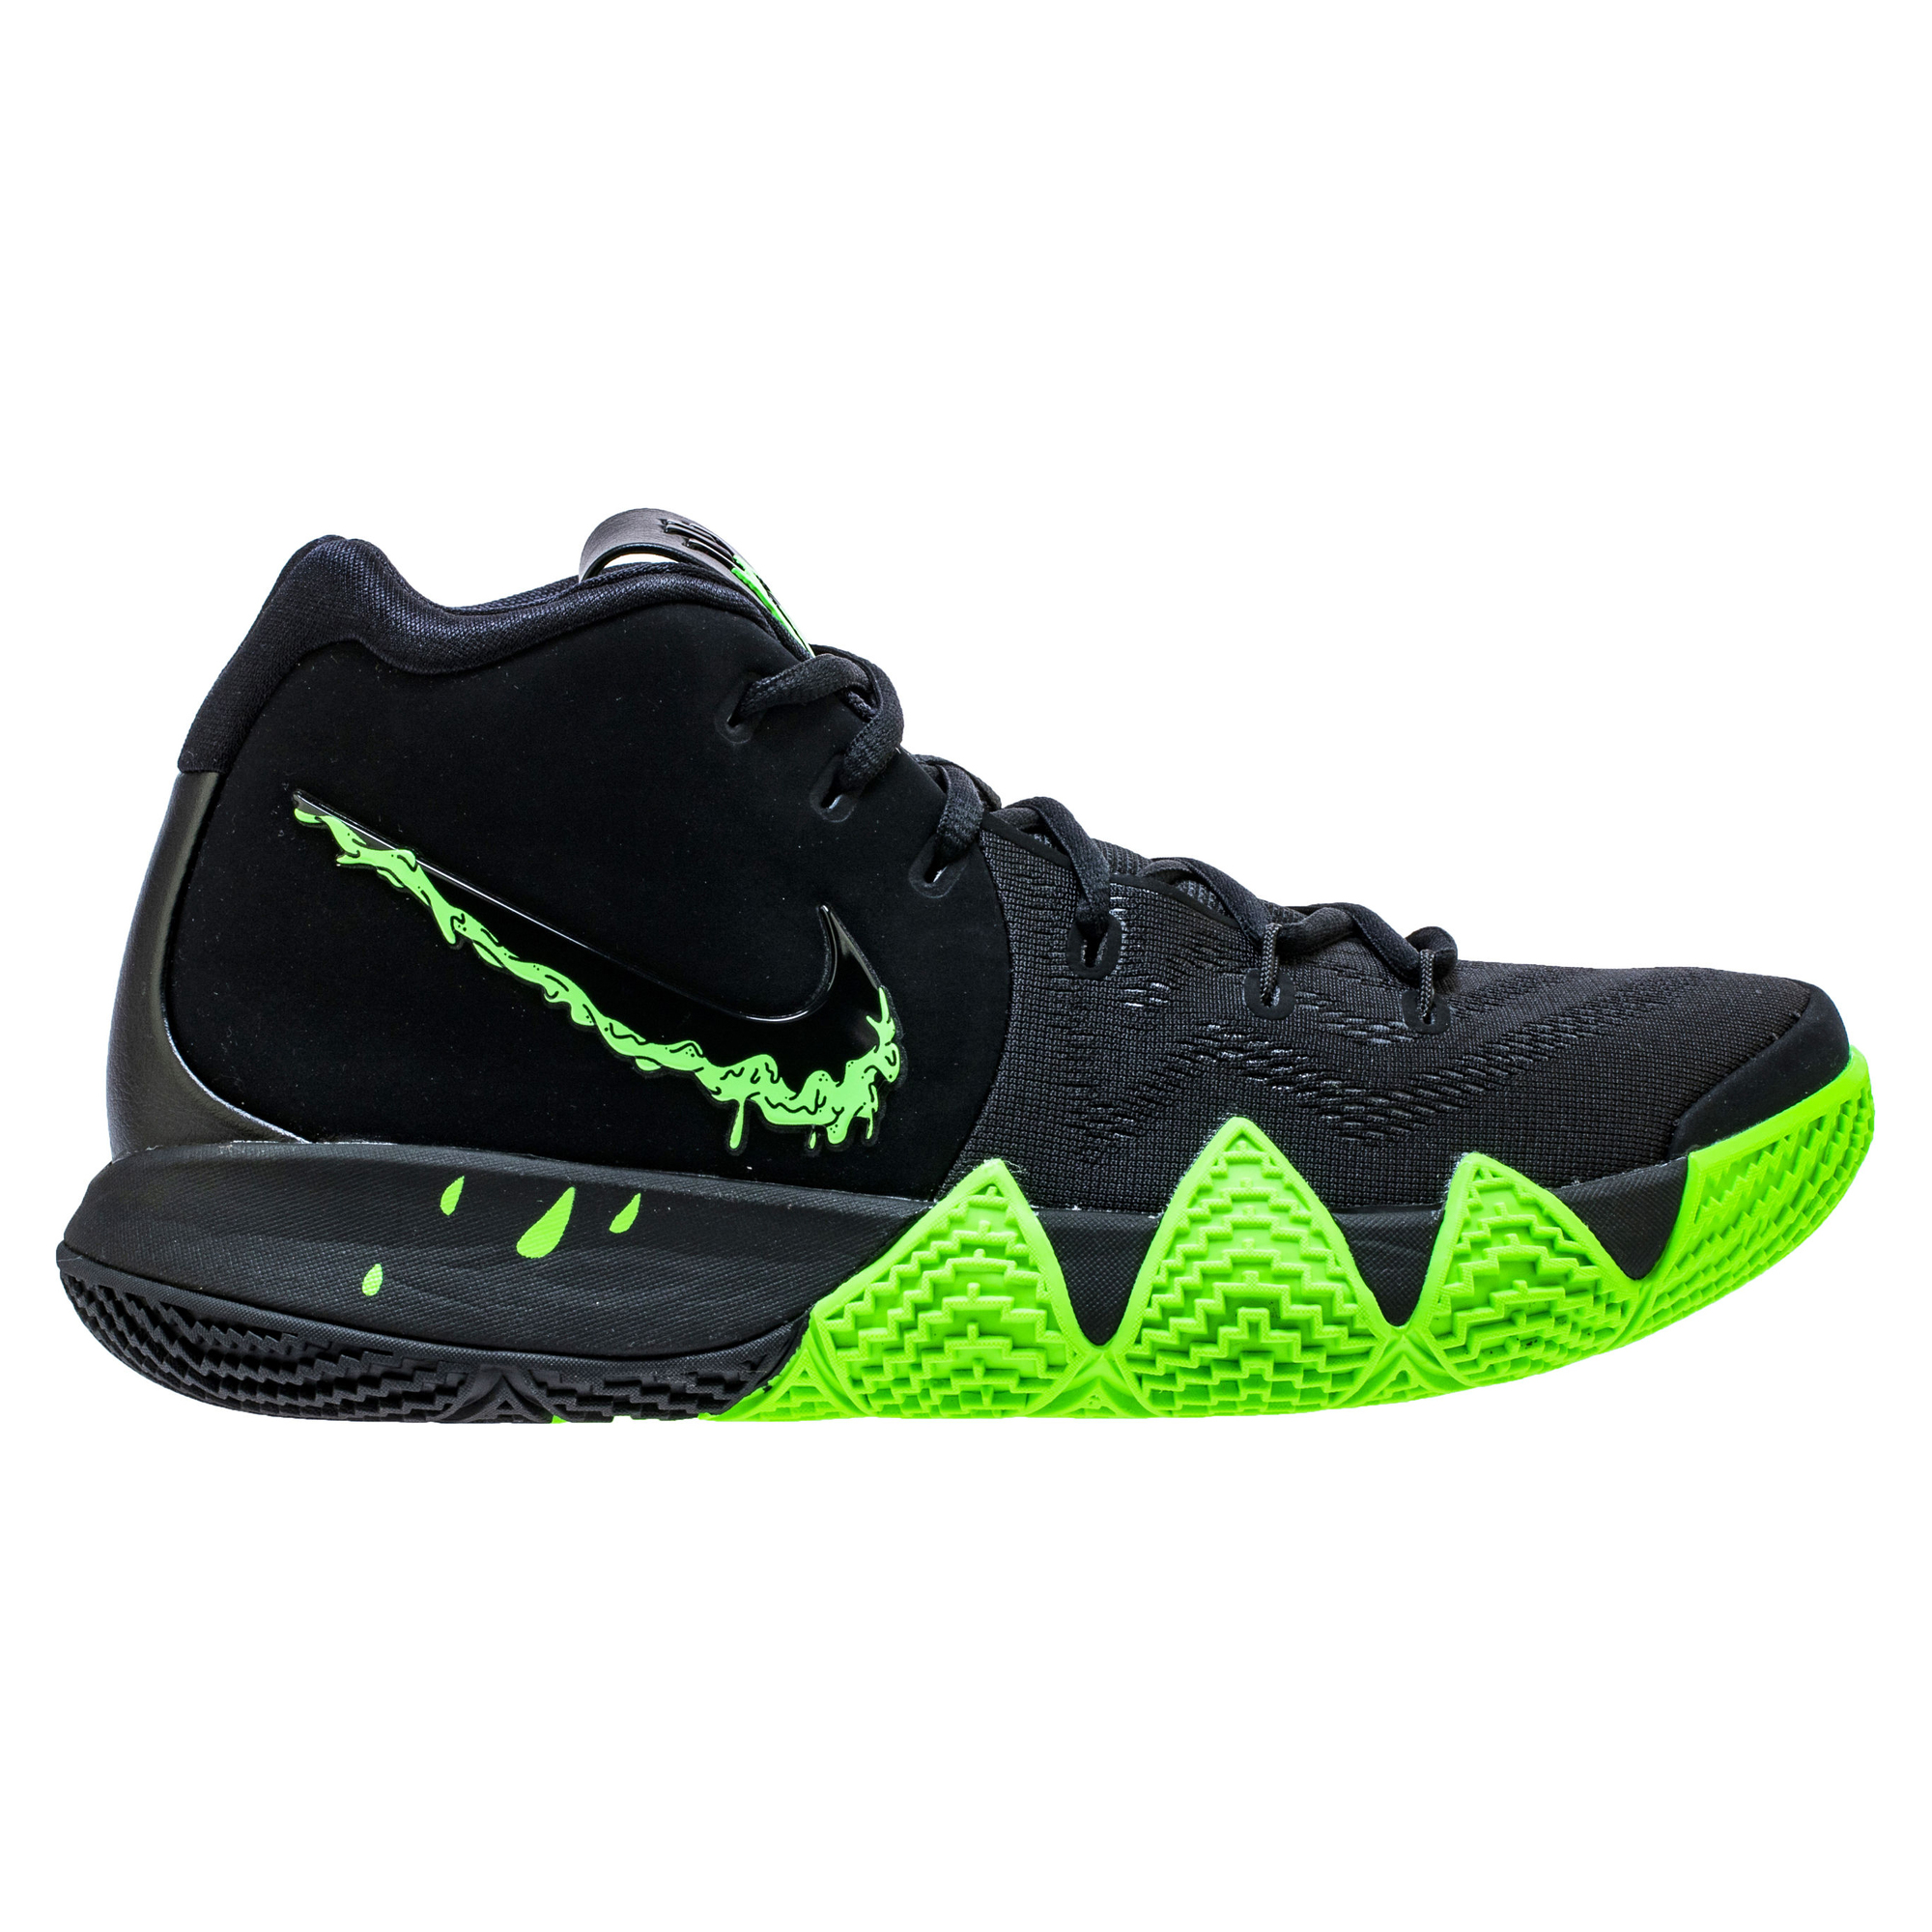 a8d7e3c6d0f4 Kyrie Irving s Latest Kyrie 4 Gets Slimed - WearTesters